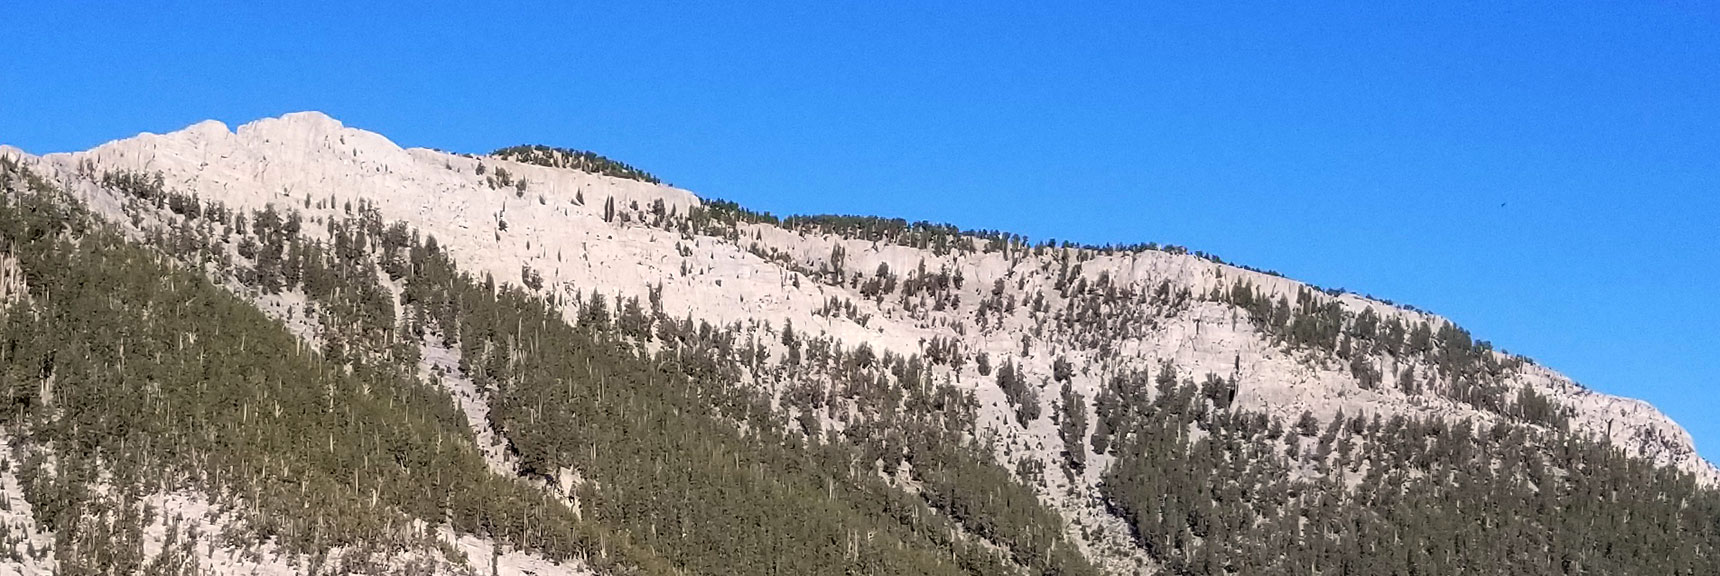 Closer View of Mummy Mountain Showing the Final Approach and Summit